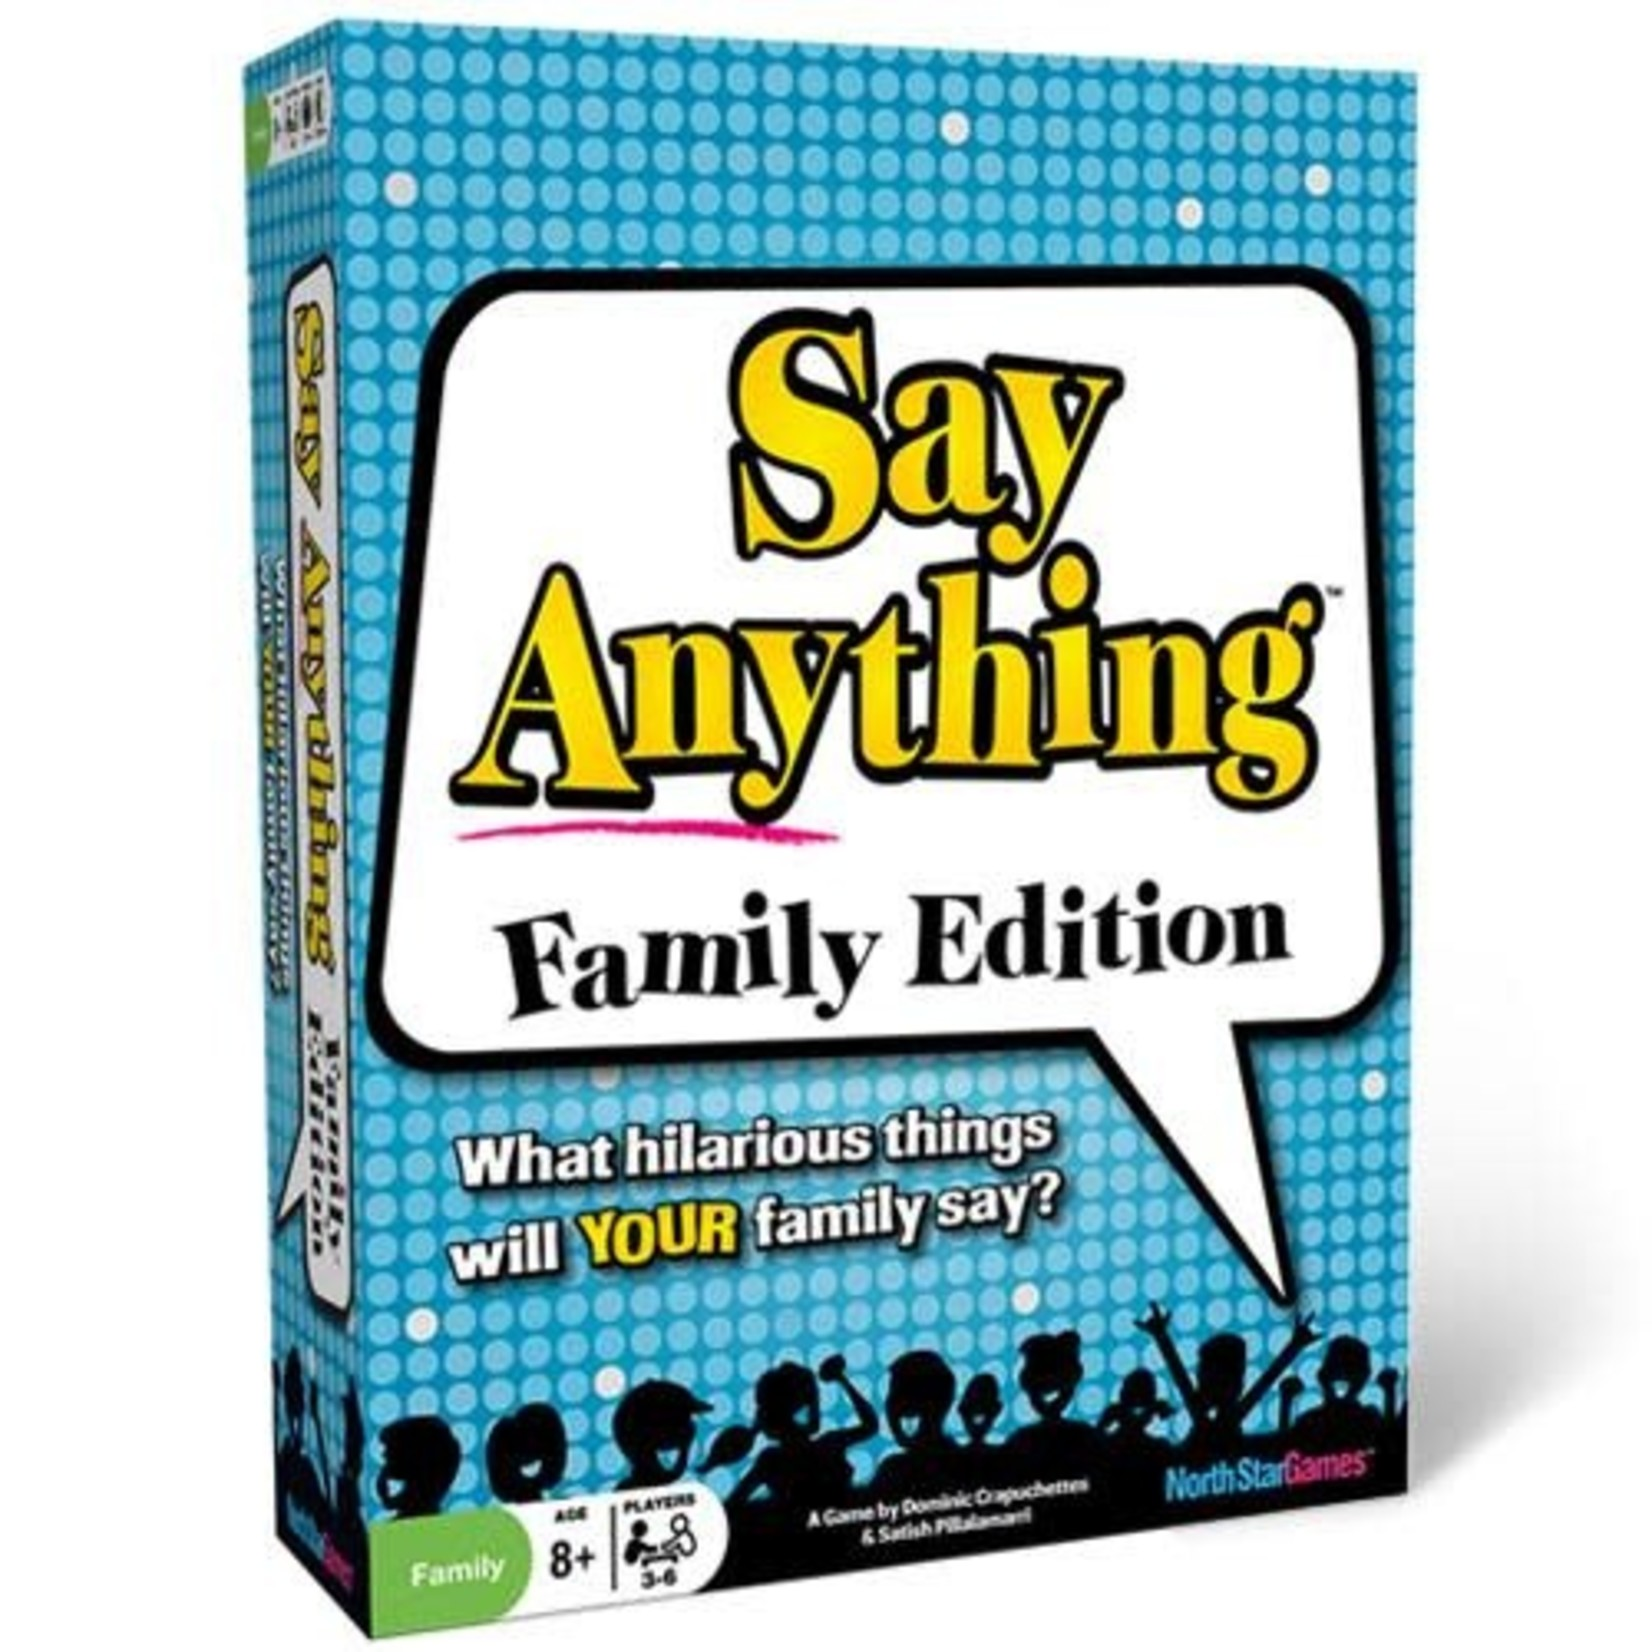 North Star Games Say Anything Family Edition